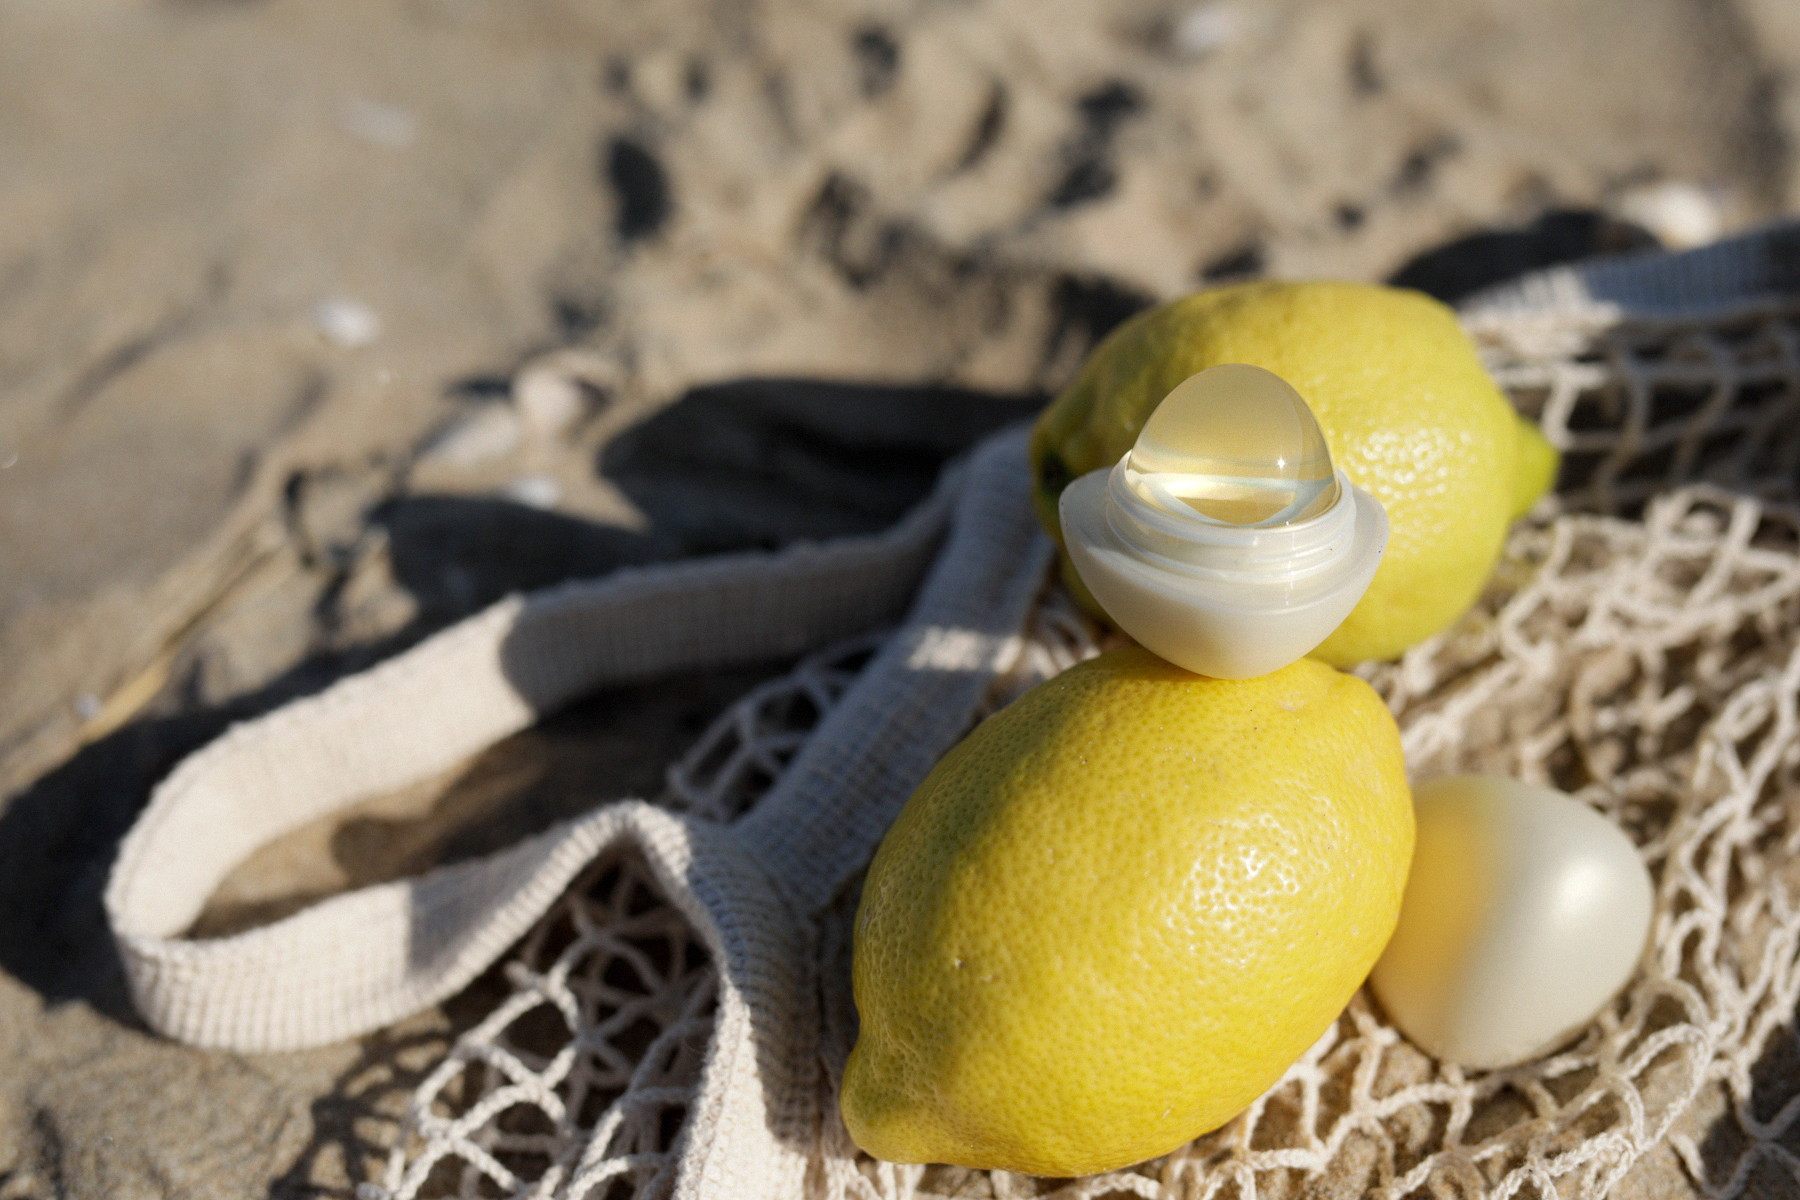 beauty at the beach lemon biotherm sun waterlovers suncare skincare sunblock beachlife beachvacation diptyque skincare eos crystal lip balm bikini swimwear beautyblogger beautybloggers catsanddogsblog ricarda schernus beautyblogger düsseldorf catsdogs1